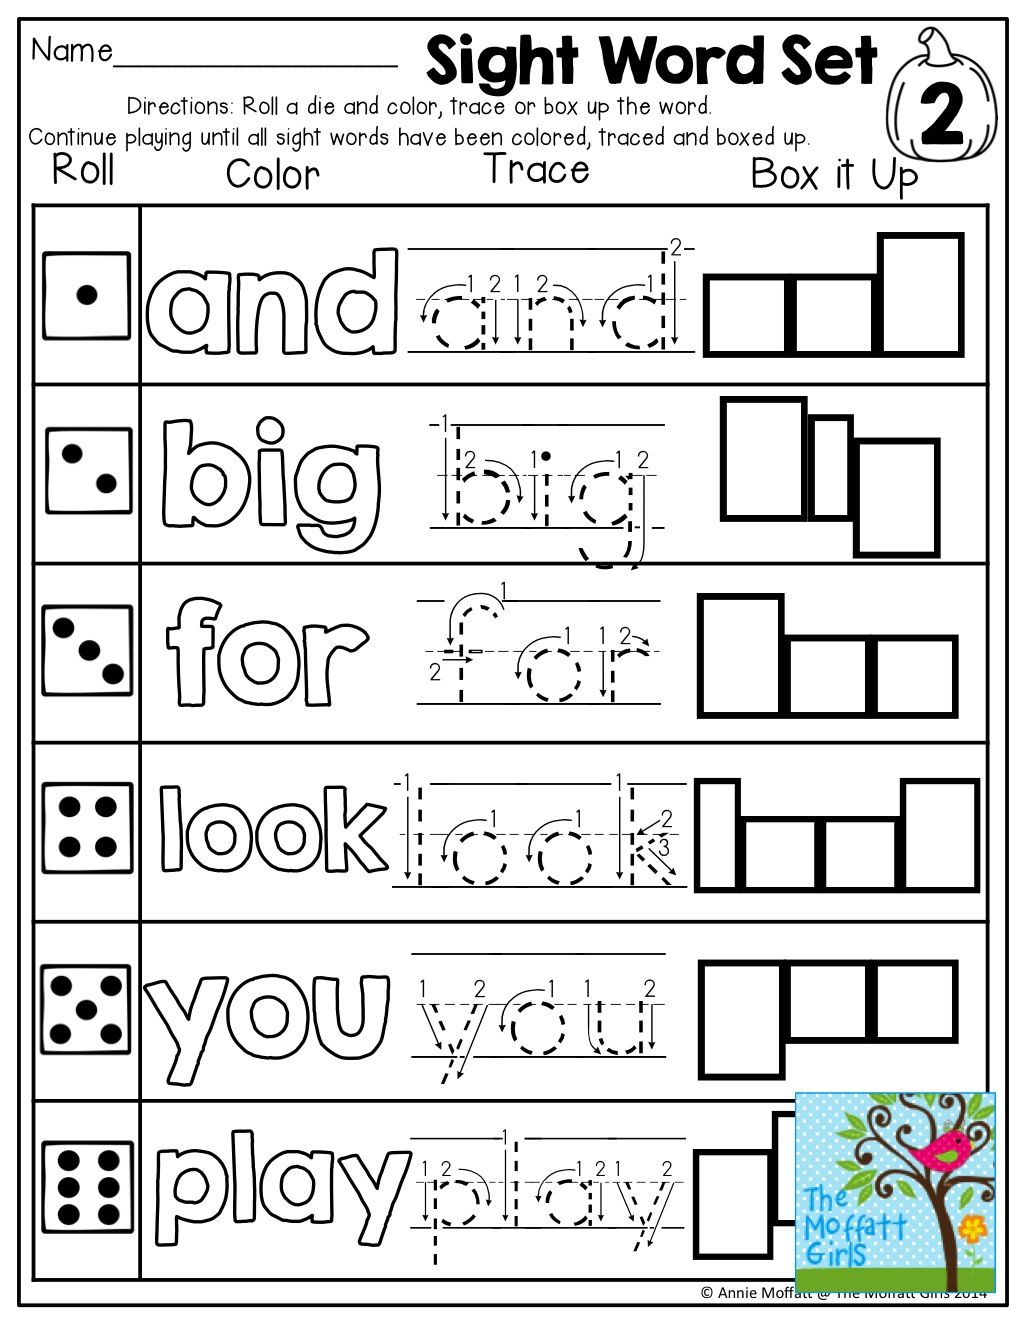 Roll A Color Trace Or Box Up A Sight Words Tons Of Fun And Effective Resources